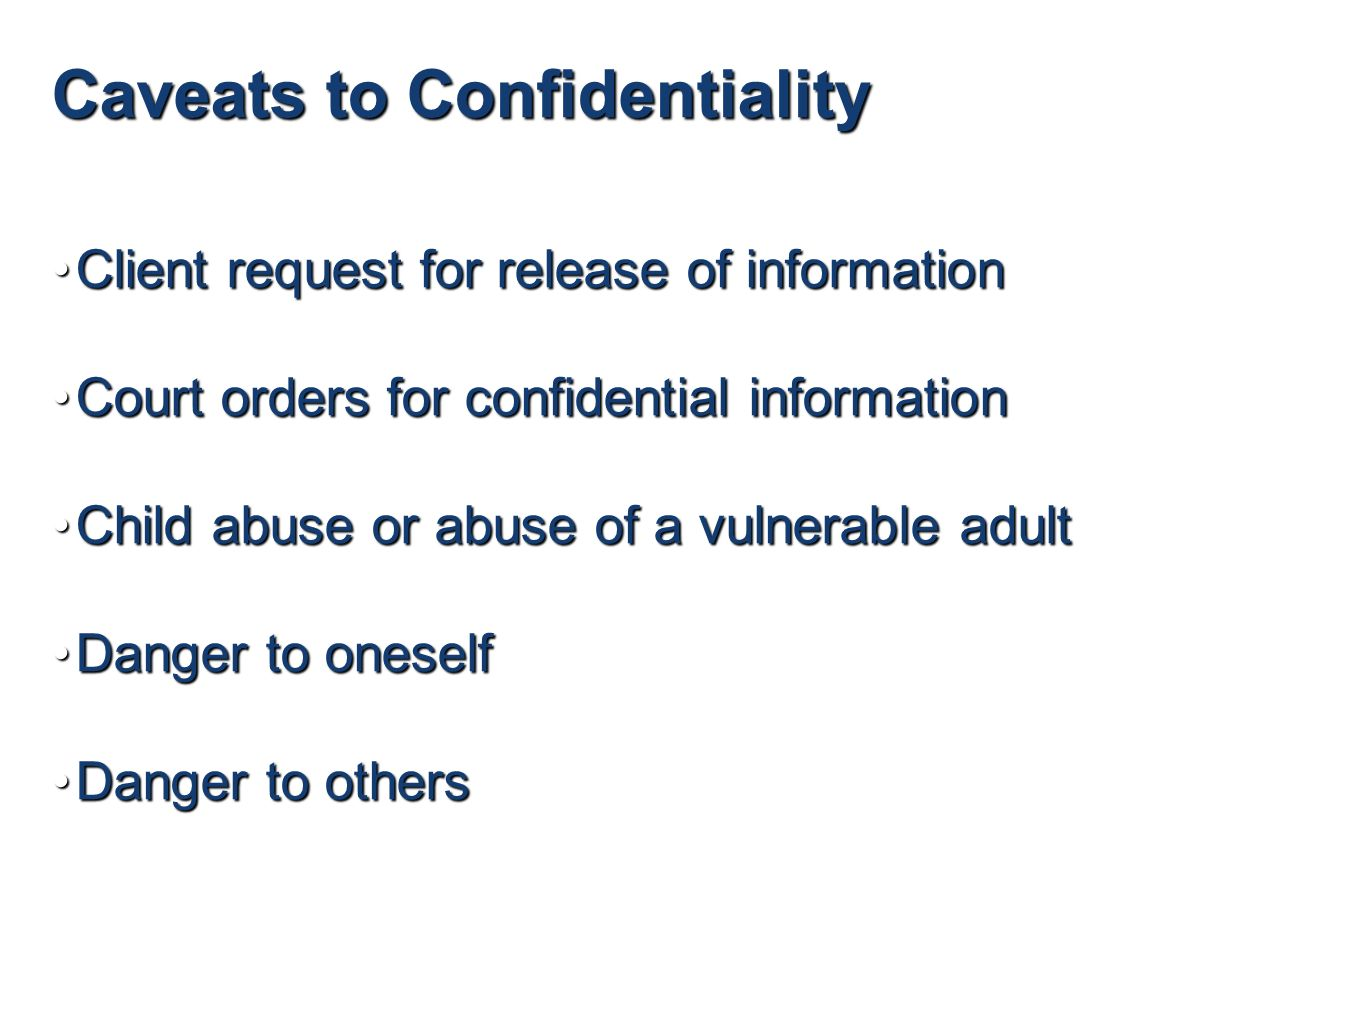 Confidentiality and abuse